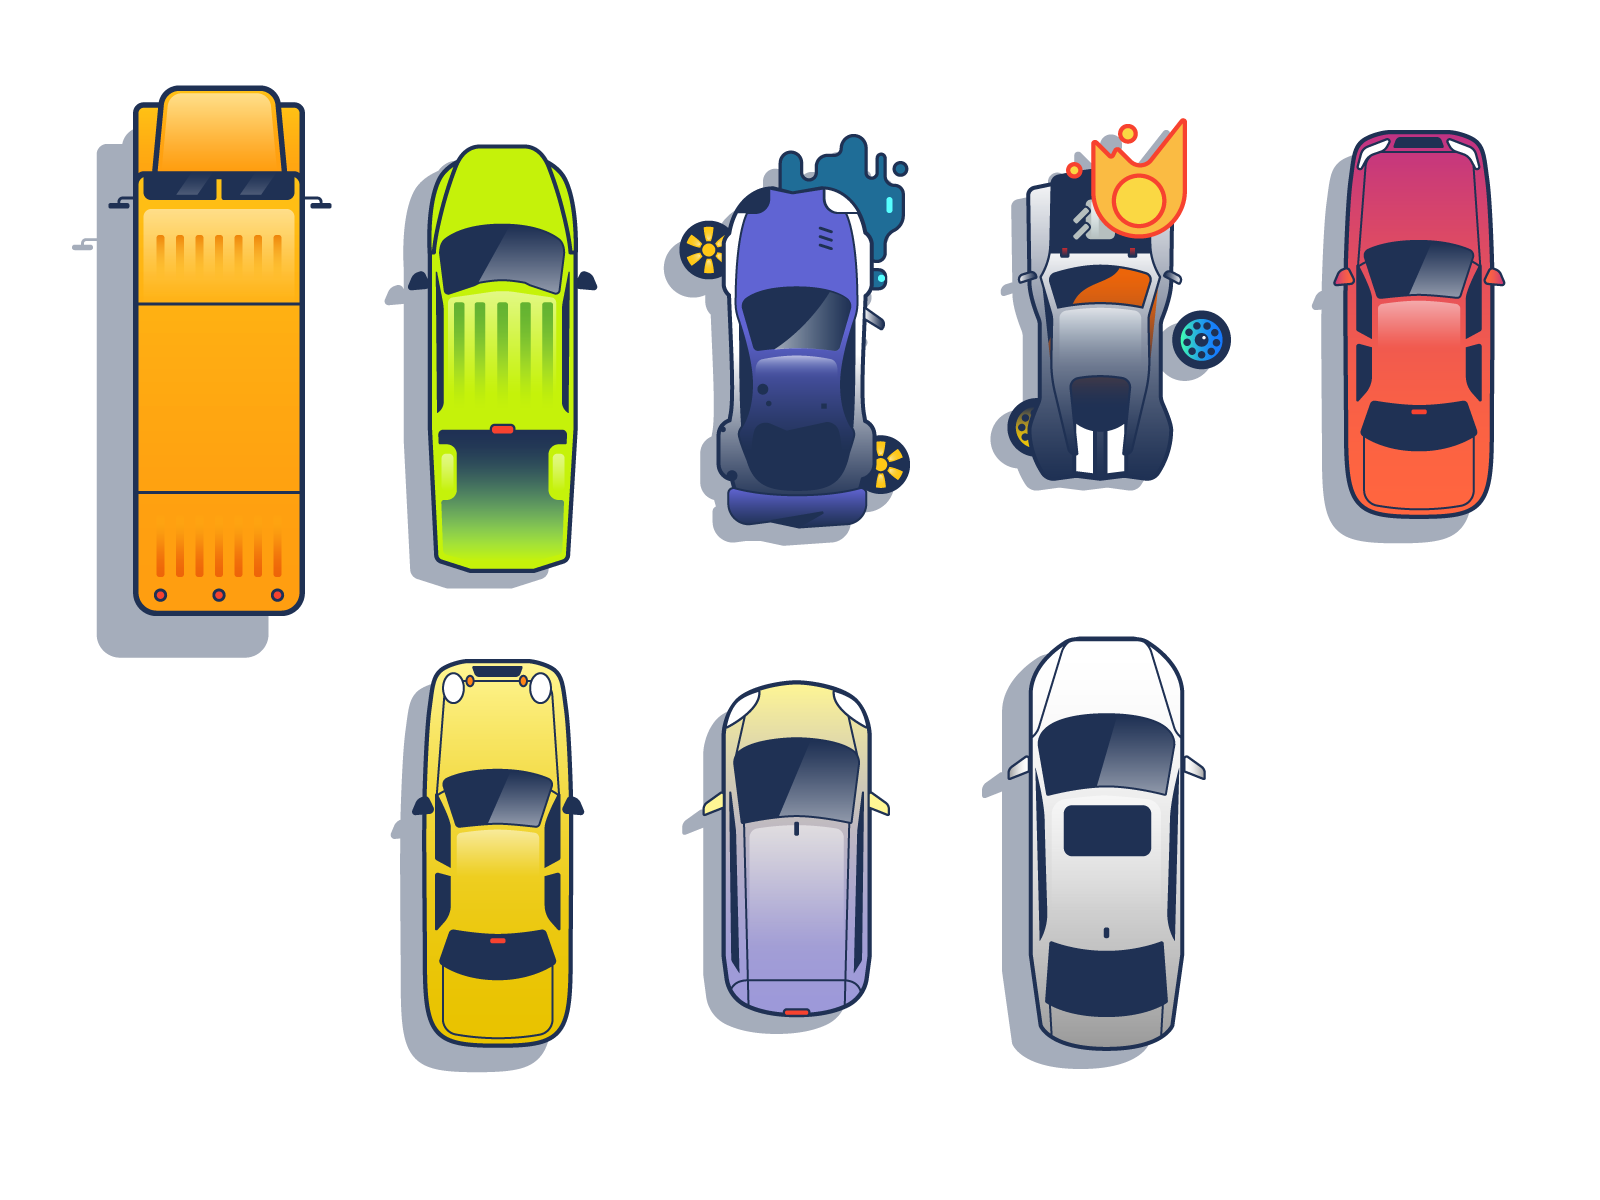 cars vehicles illustration graphic design